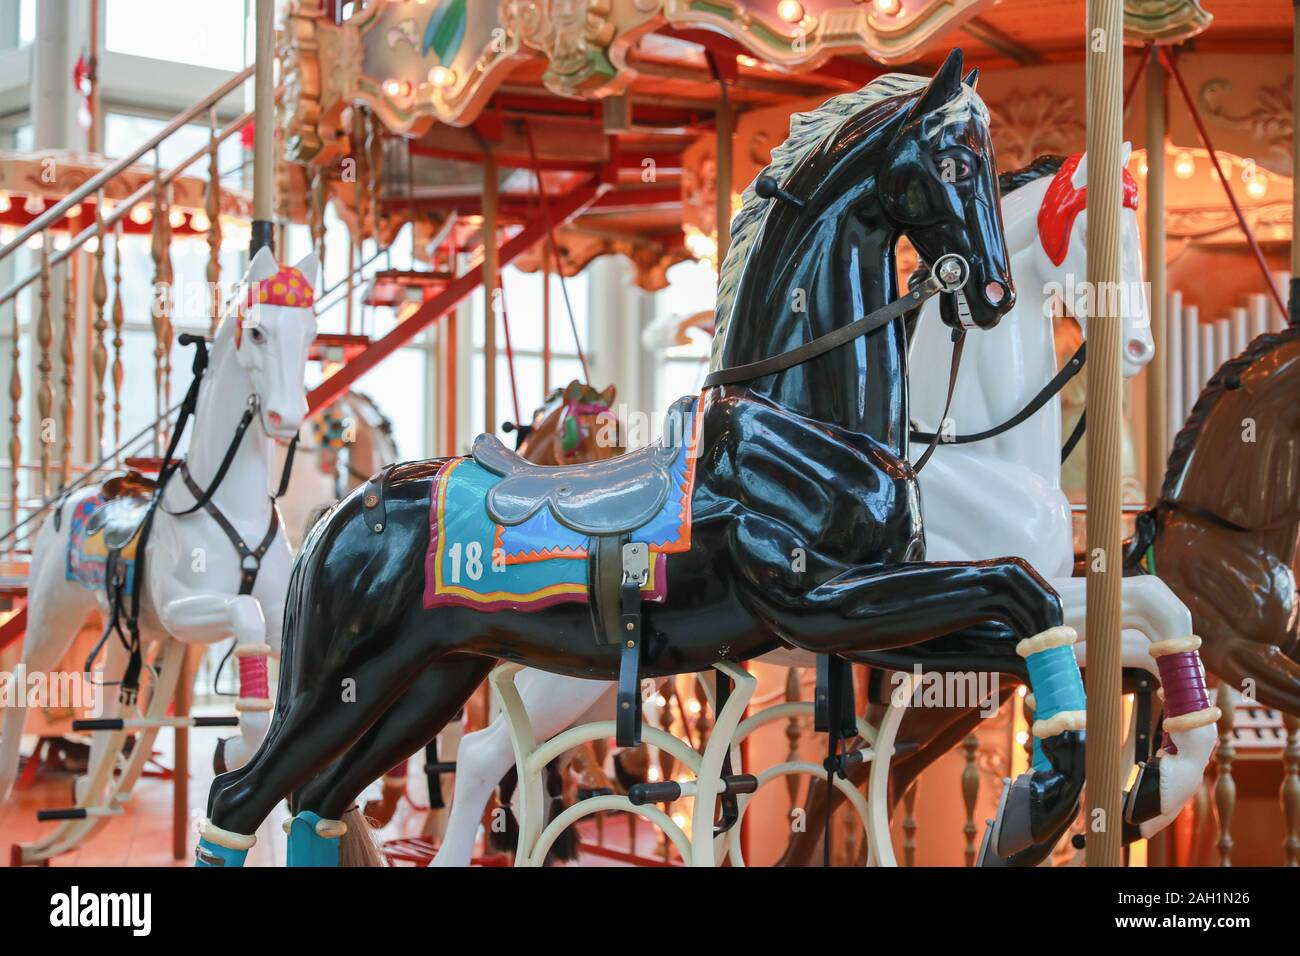 Page 2 Carousel Horse Isolated High Resolution Stock Photography And Images Alamy